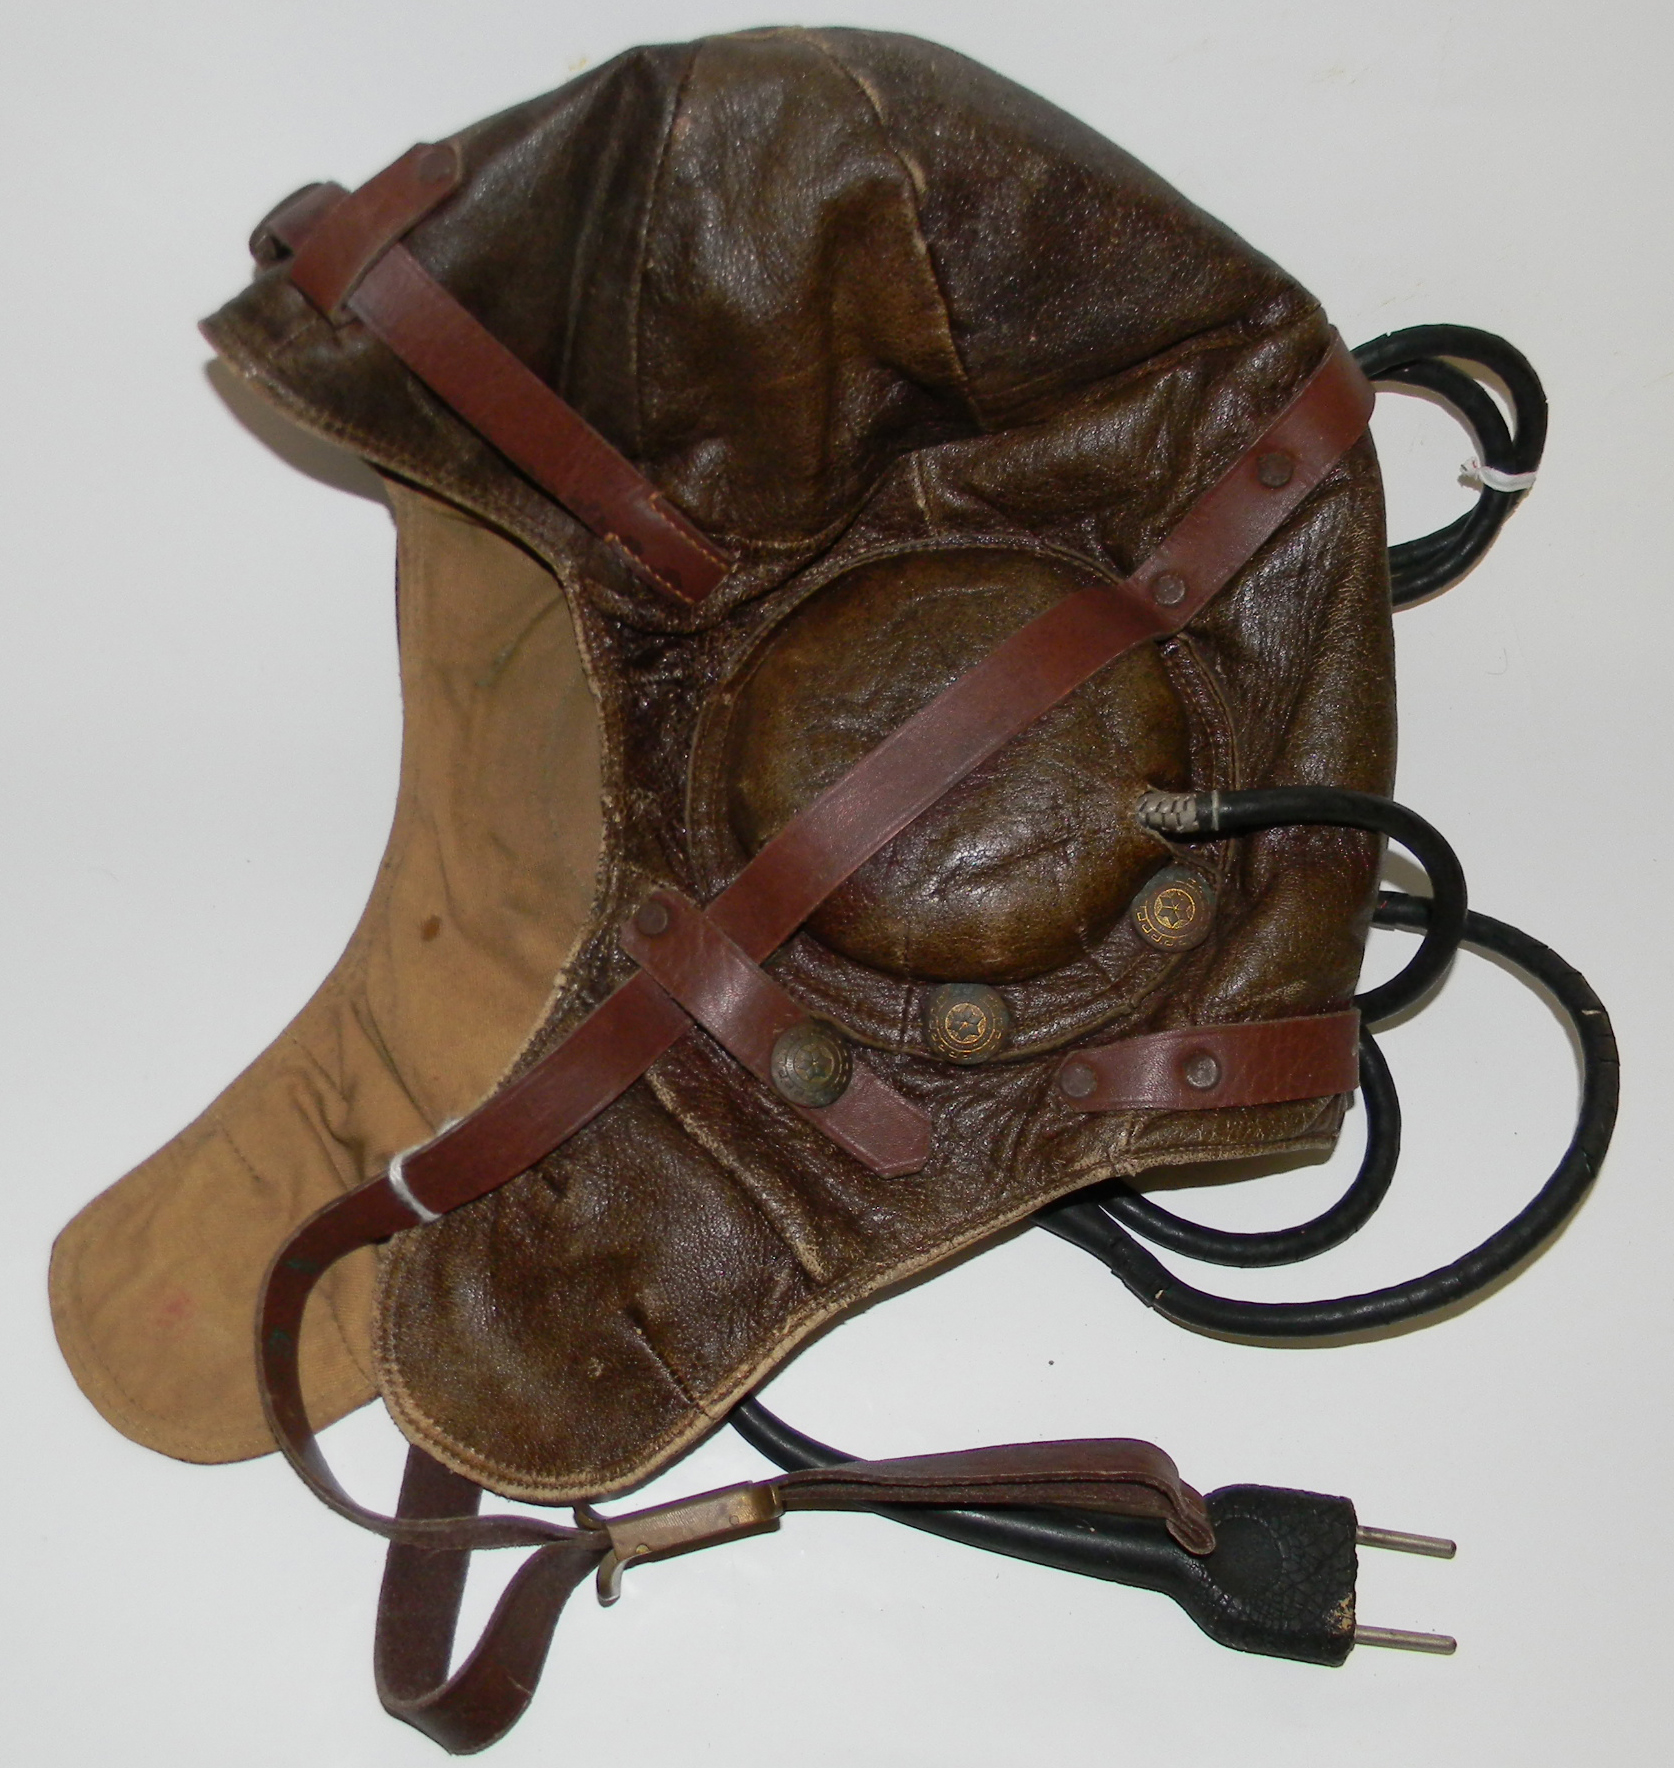 USSR tanker helmet with comms